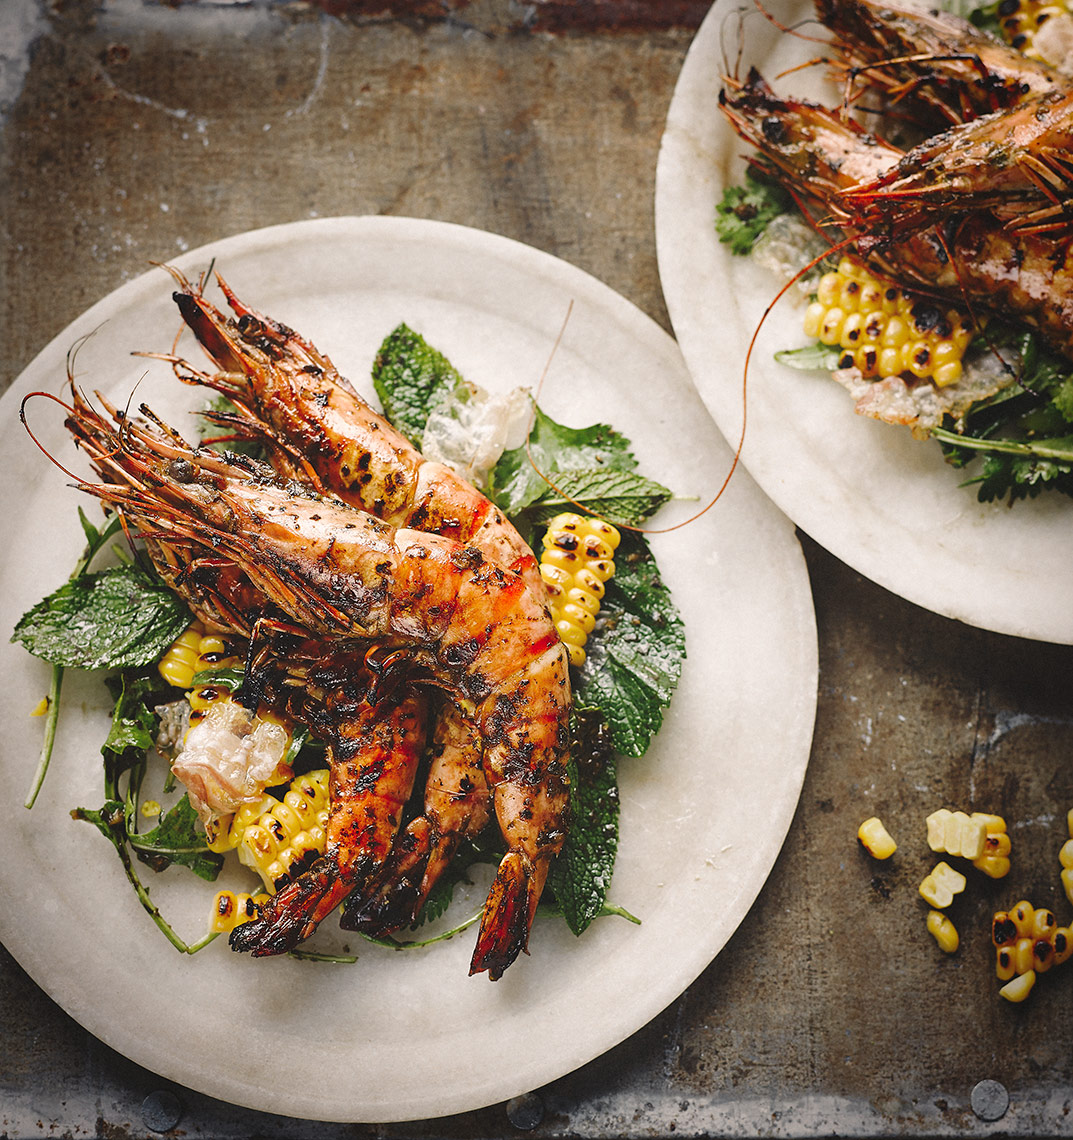 Grilled prawns and tamarind | Colin Campbell - Food Photographer